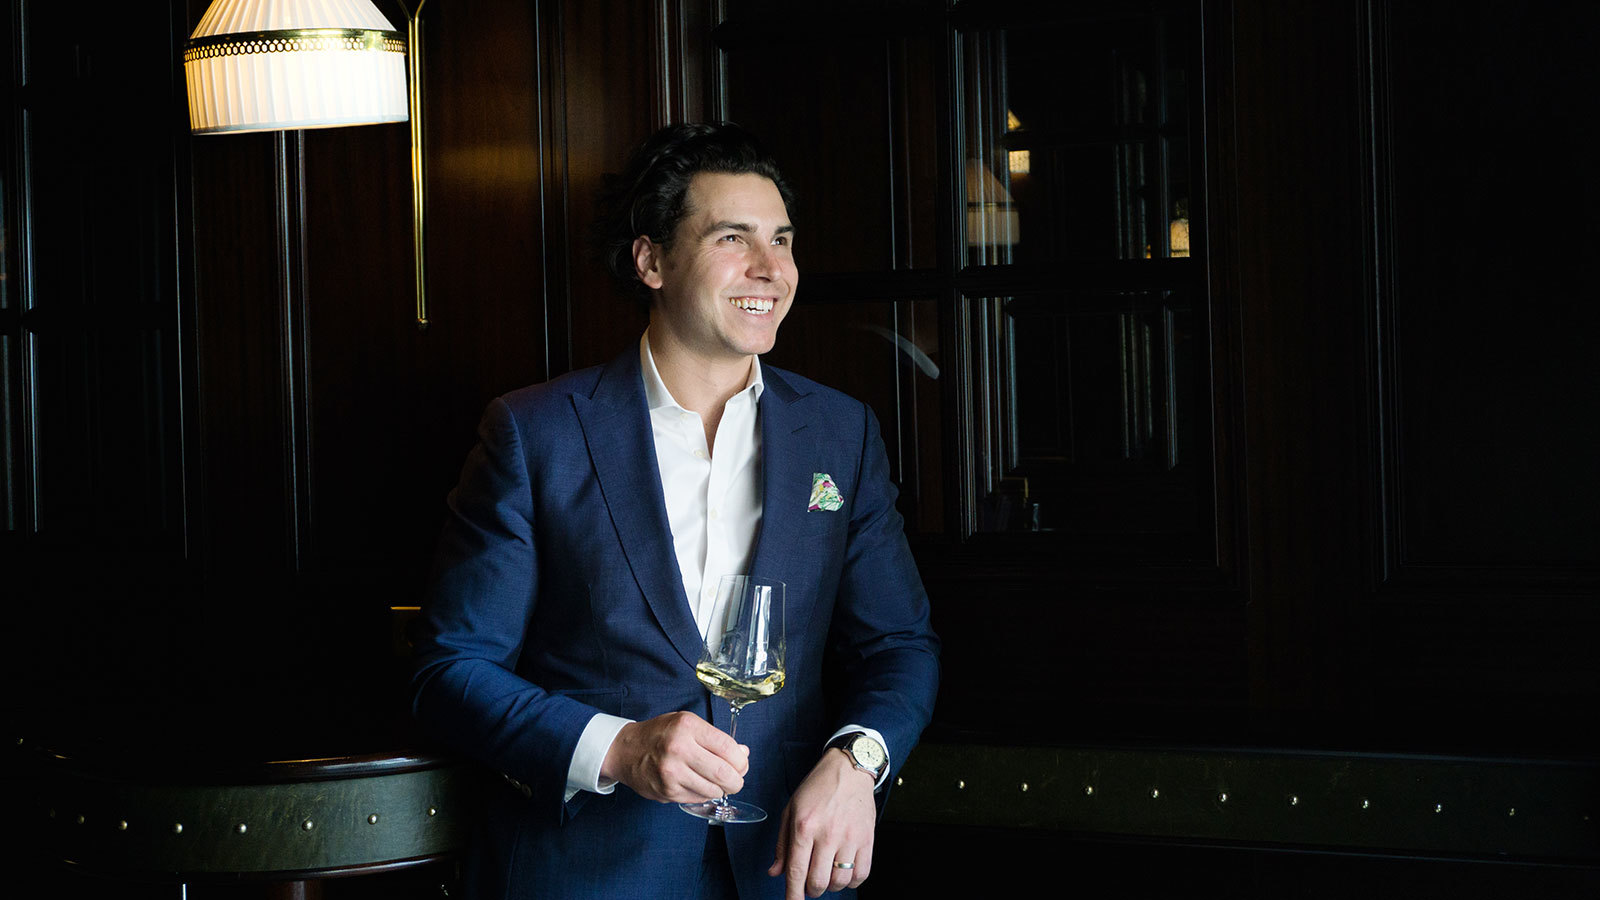 Sommelier Talk: Charming Guests And Championing The Finger Lakes: A Day In The Life Of The Nomad's Thomas Pastuszak photo